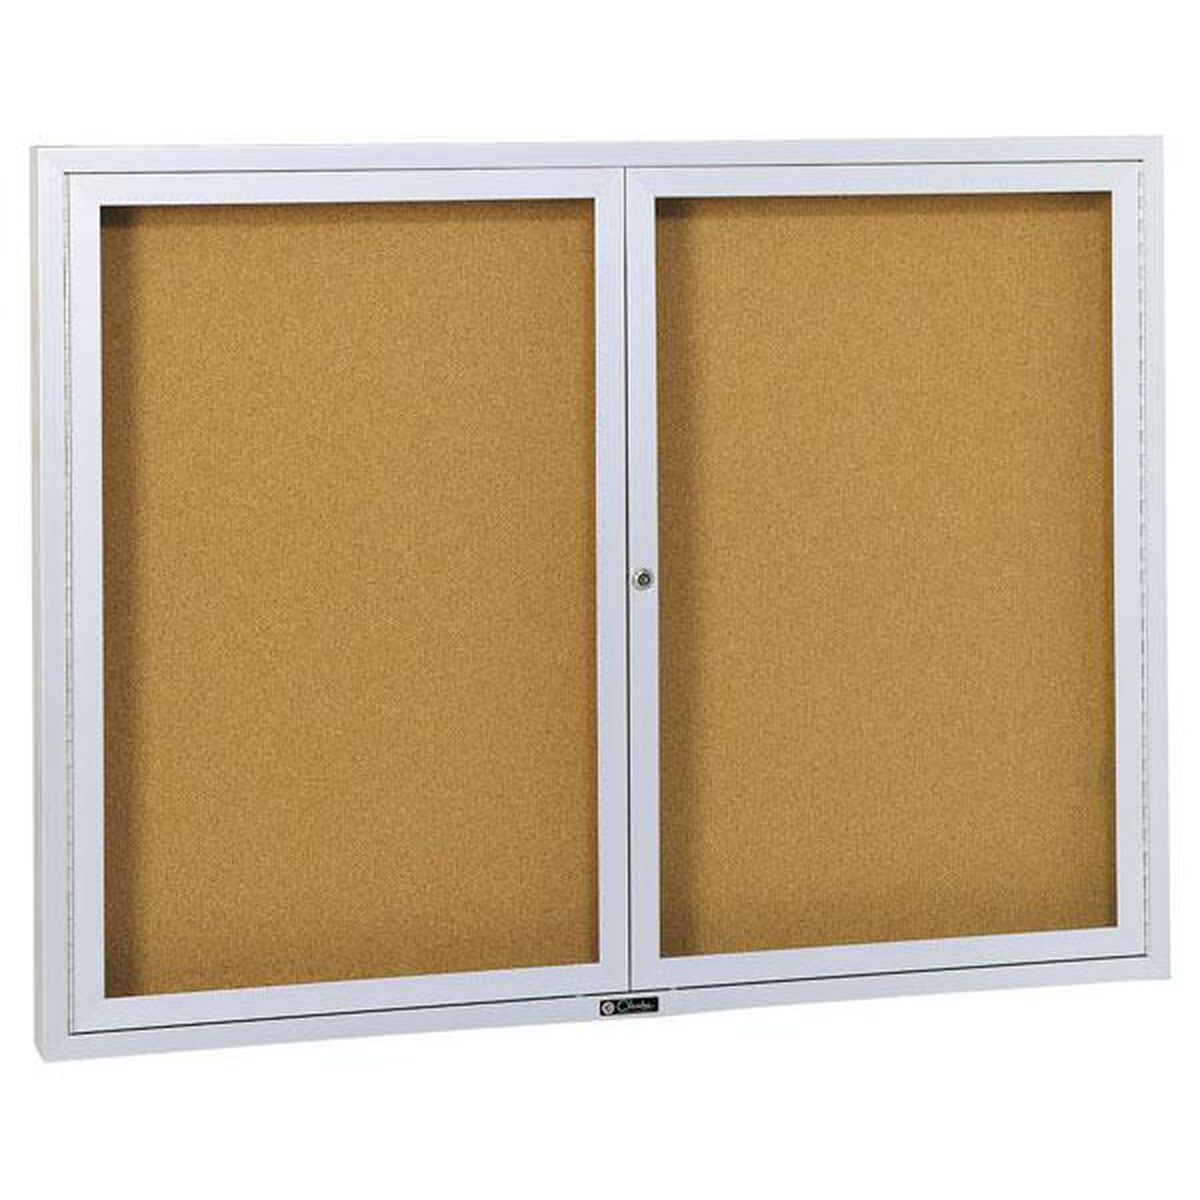 Revere Series Bulletin Board Cabinet With Nucork Panel And 2 Locking Tempered Glass Doors 72w X 48h